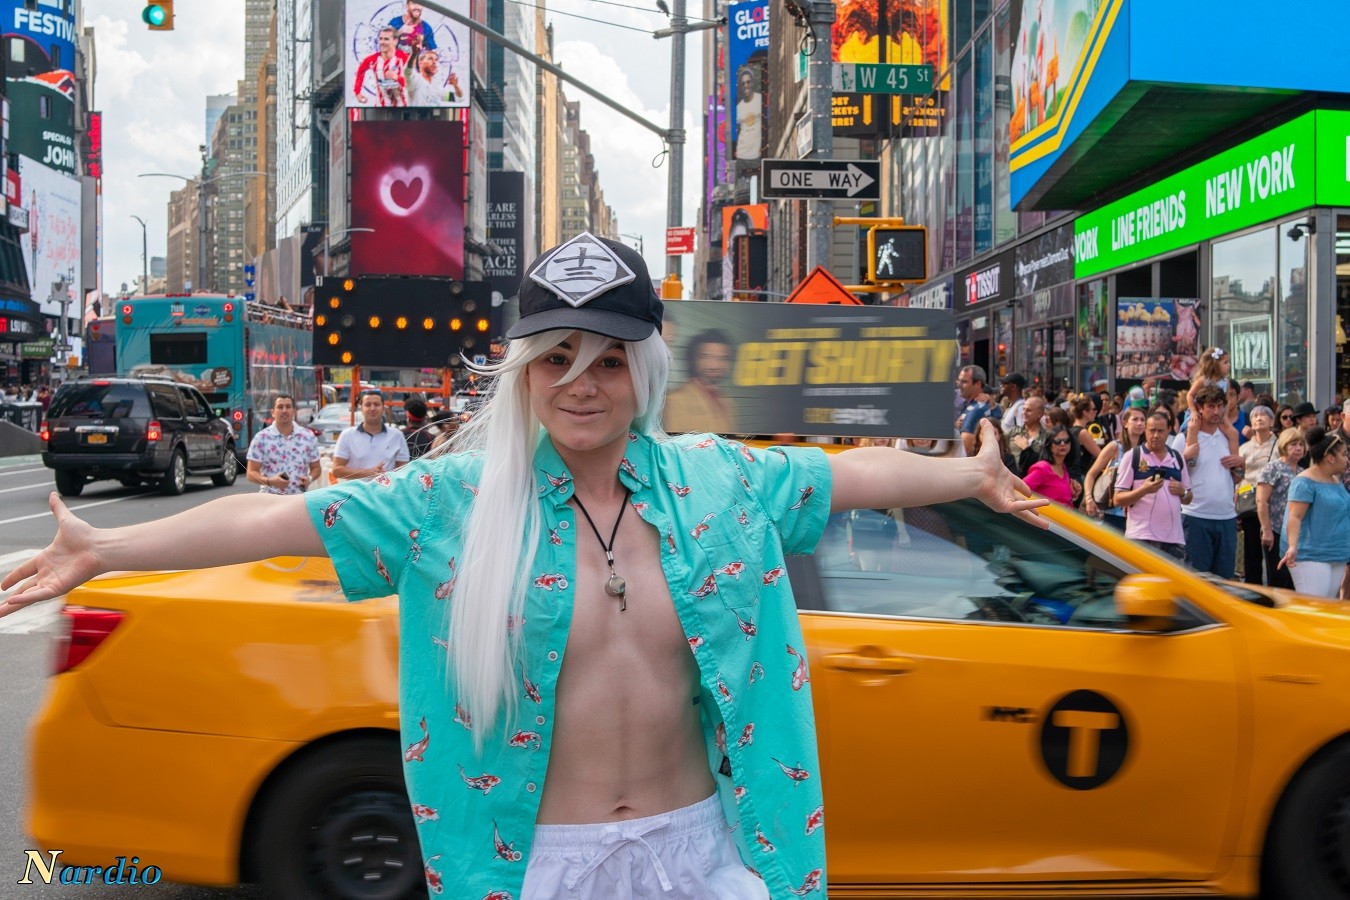 Brave Little Cosplay's Time Square Fun